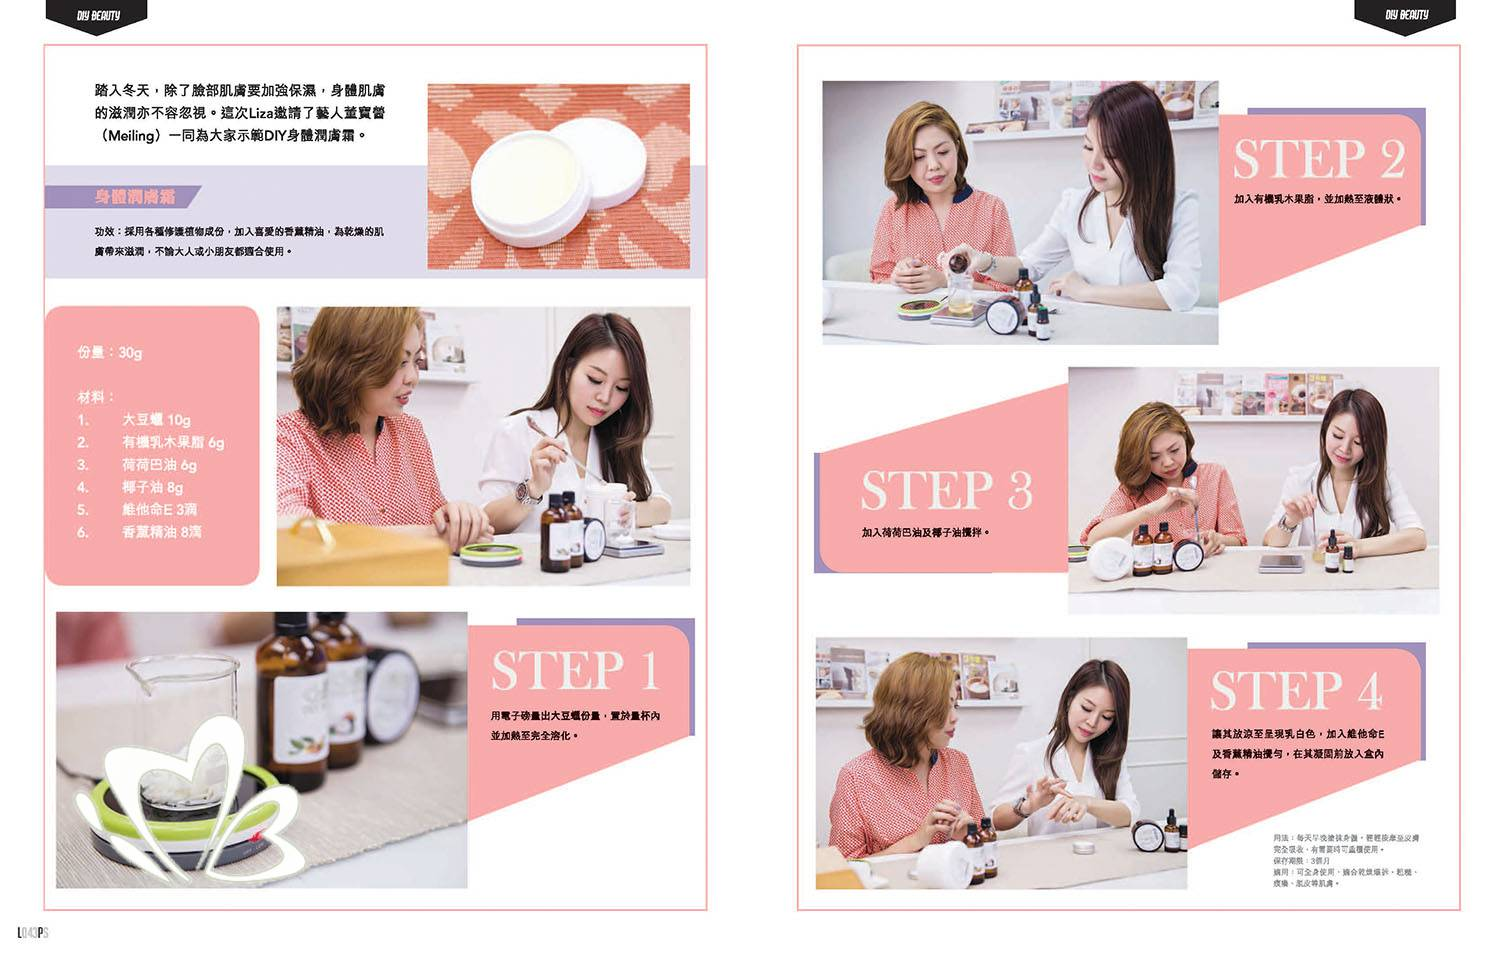 loops_12th_online spread pdf_Page_24_s